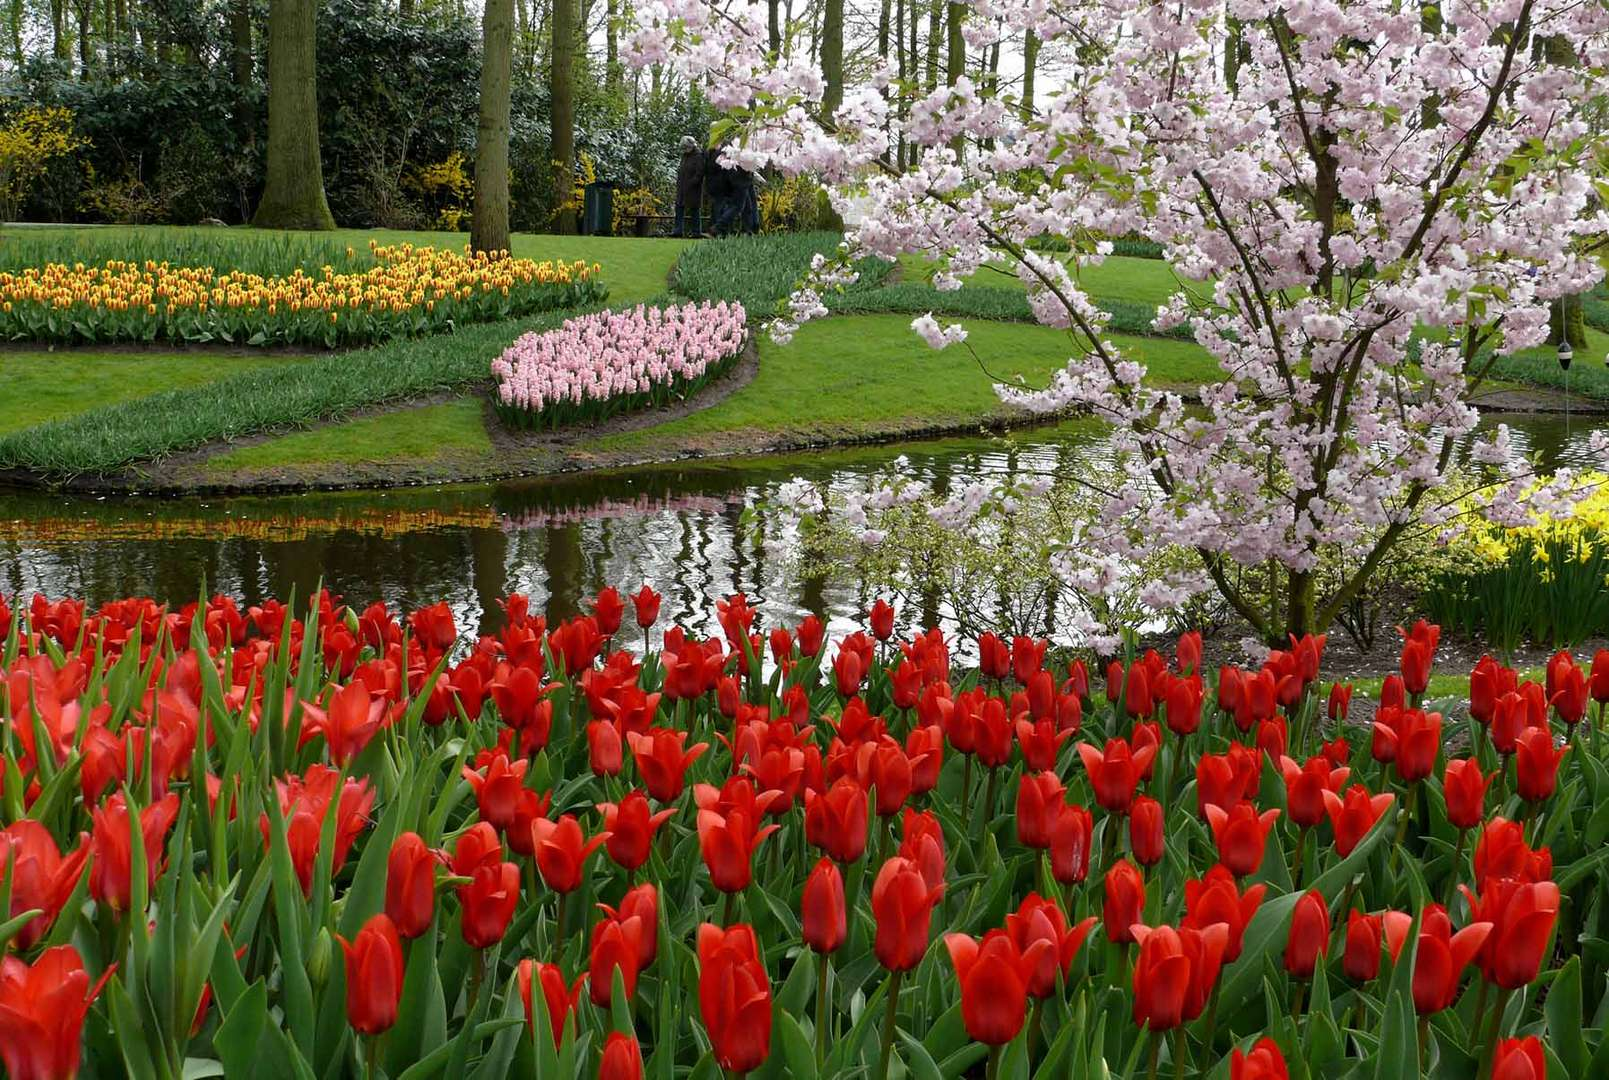 fr hling im keukenhof foto bild jahreszeiten fr hling. Black Bedroom Furniture Sets. Home Design Ideas